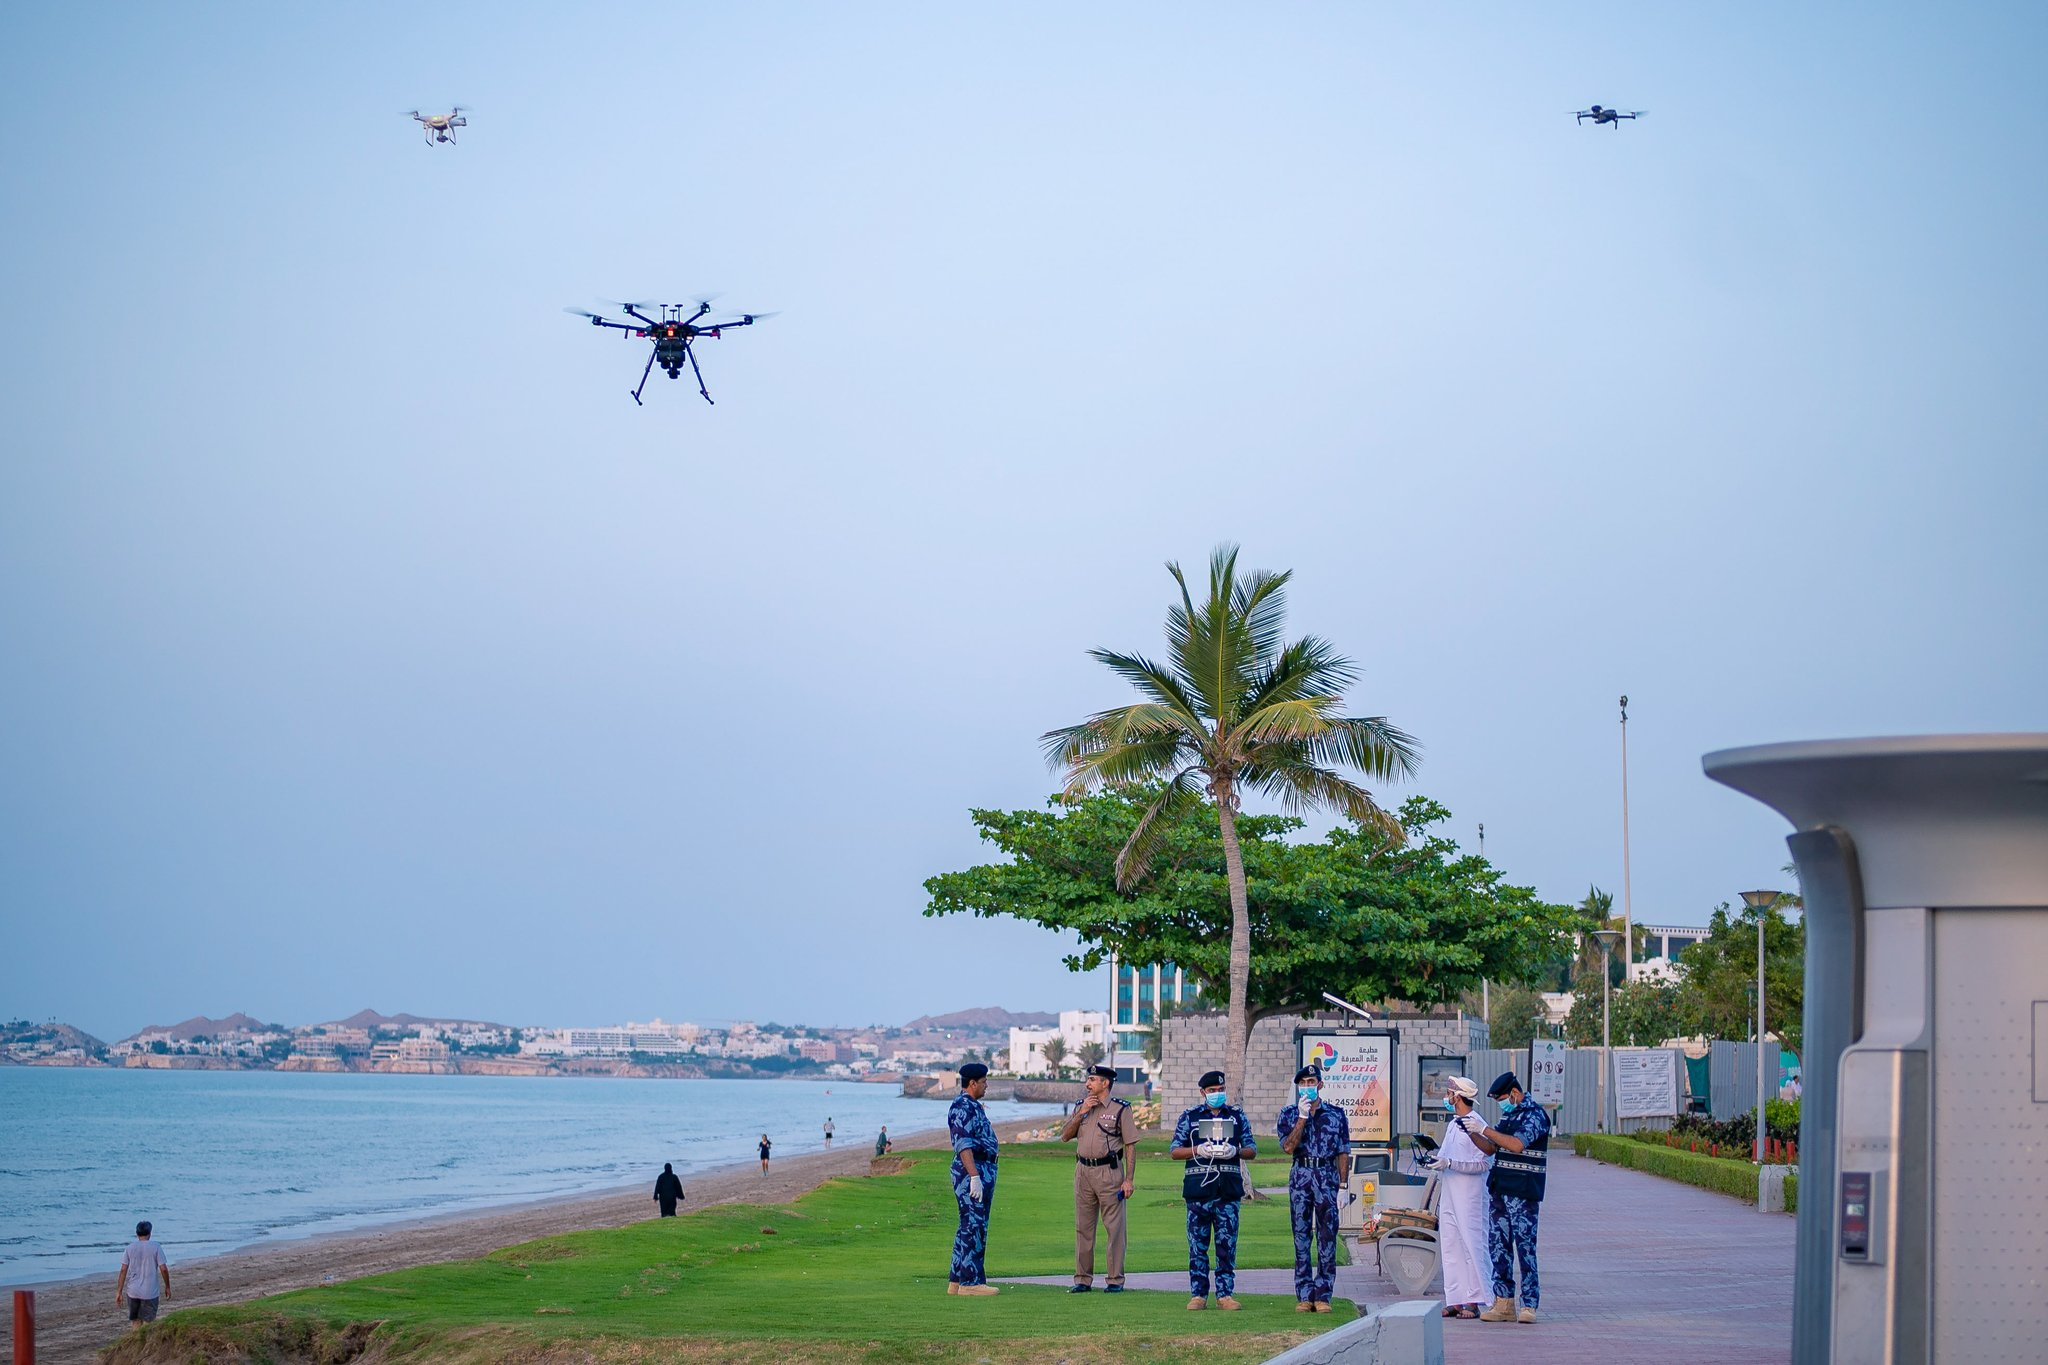 ROP using drones to ensure people maintain social distancing